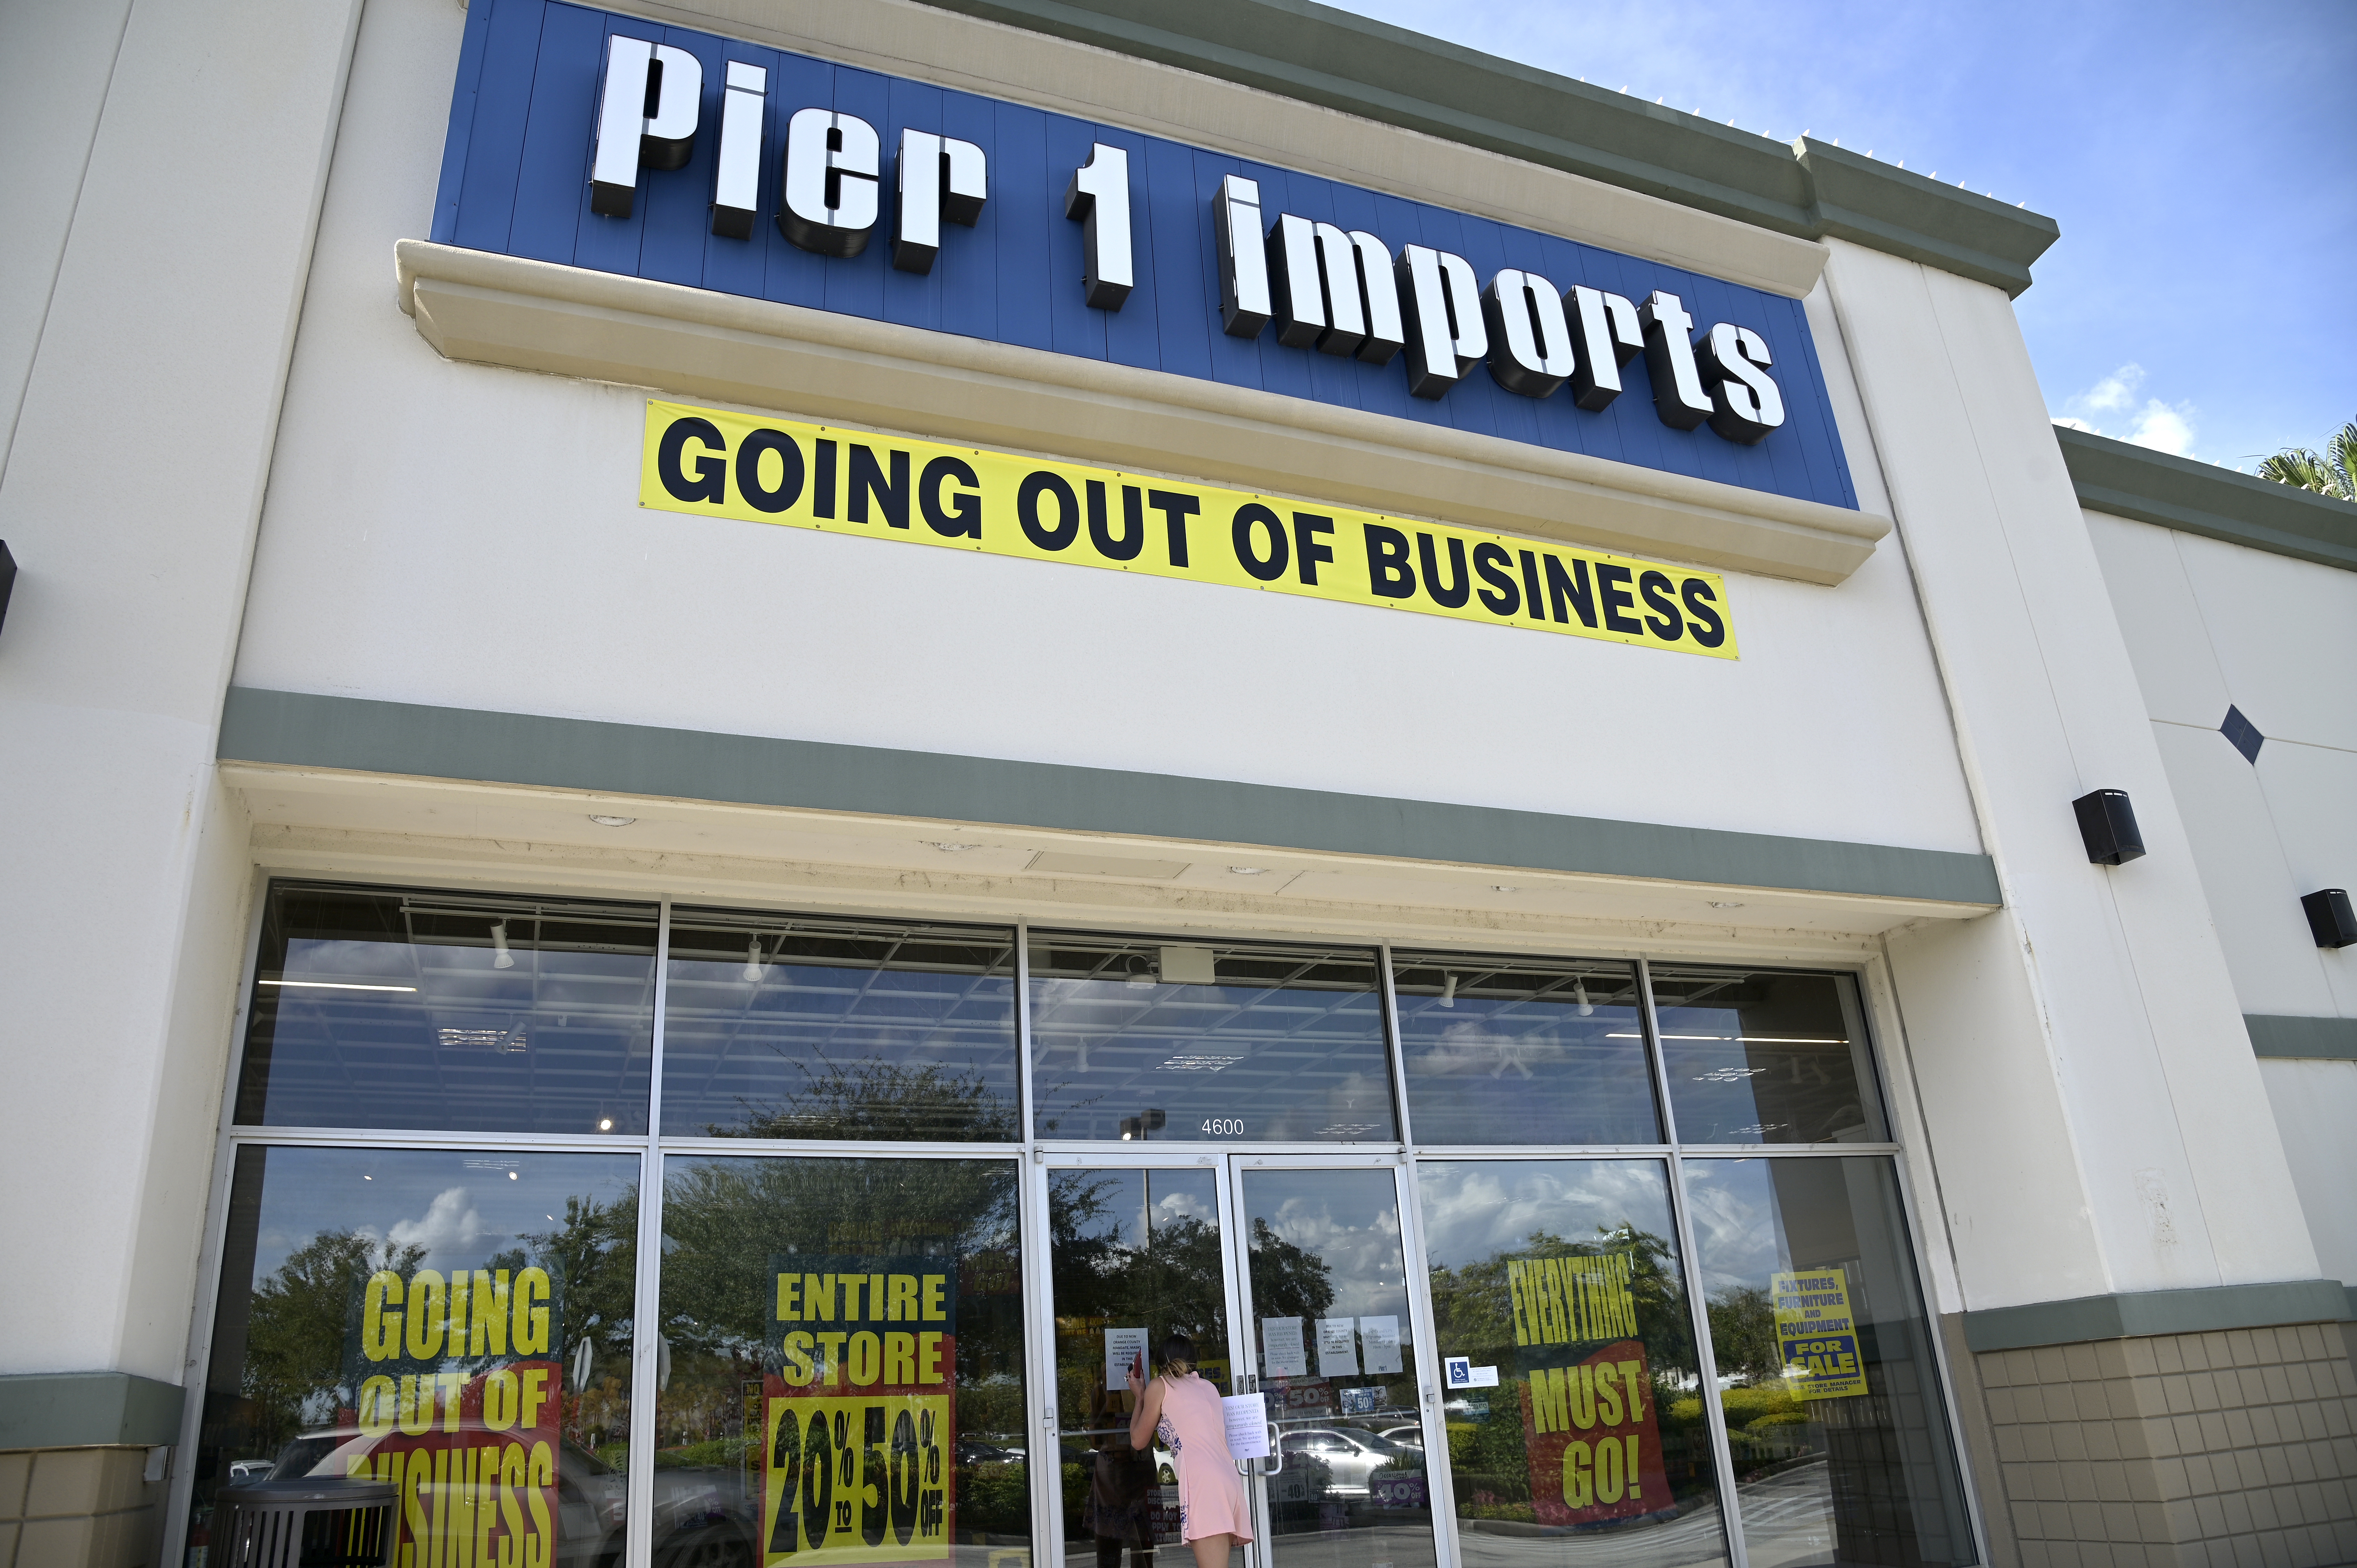 A shopper peers into a closed Pier 1 Imports store, Monday, Aug. 3, 2020, in Orlando, Fla. The chain plans to shutter all stores and liquidate due to COVID-19. Many beaches and businesses have reopened during the new coronavirus pandemic. (Phelan M. Ebenhack via AP)